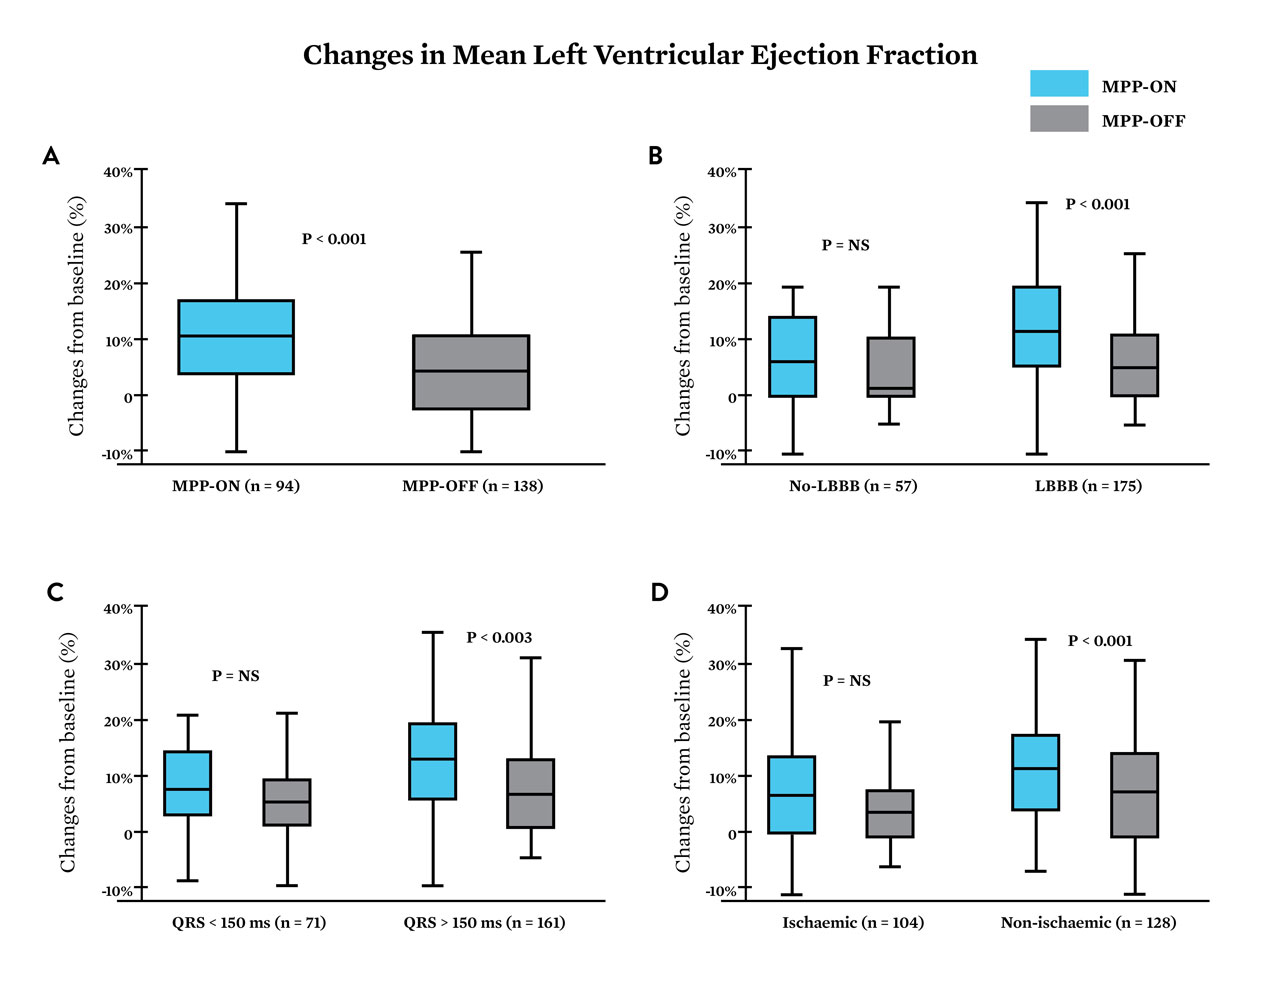 graph showing changes in mean left ventricular ejection fraction